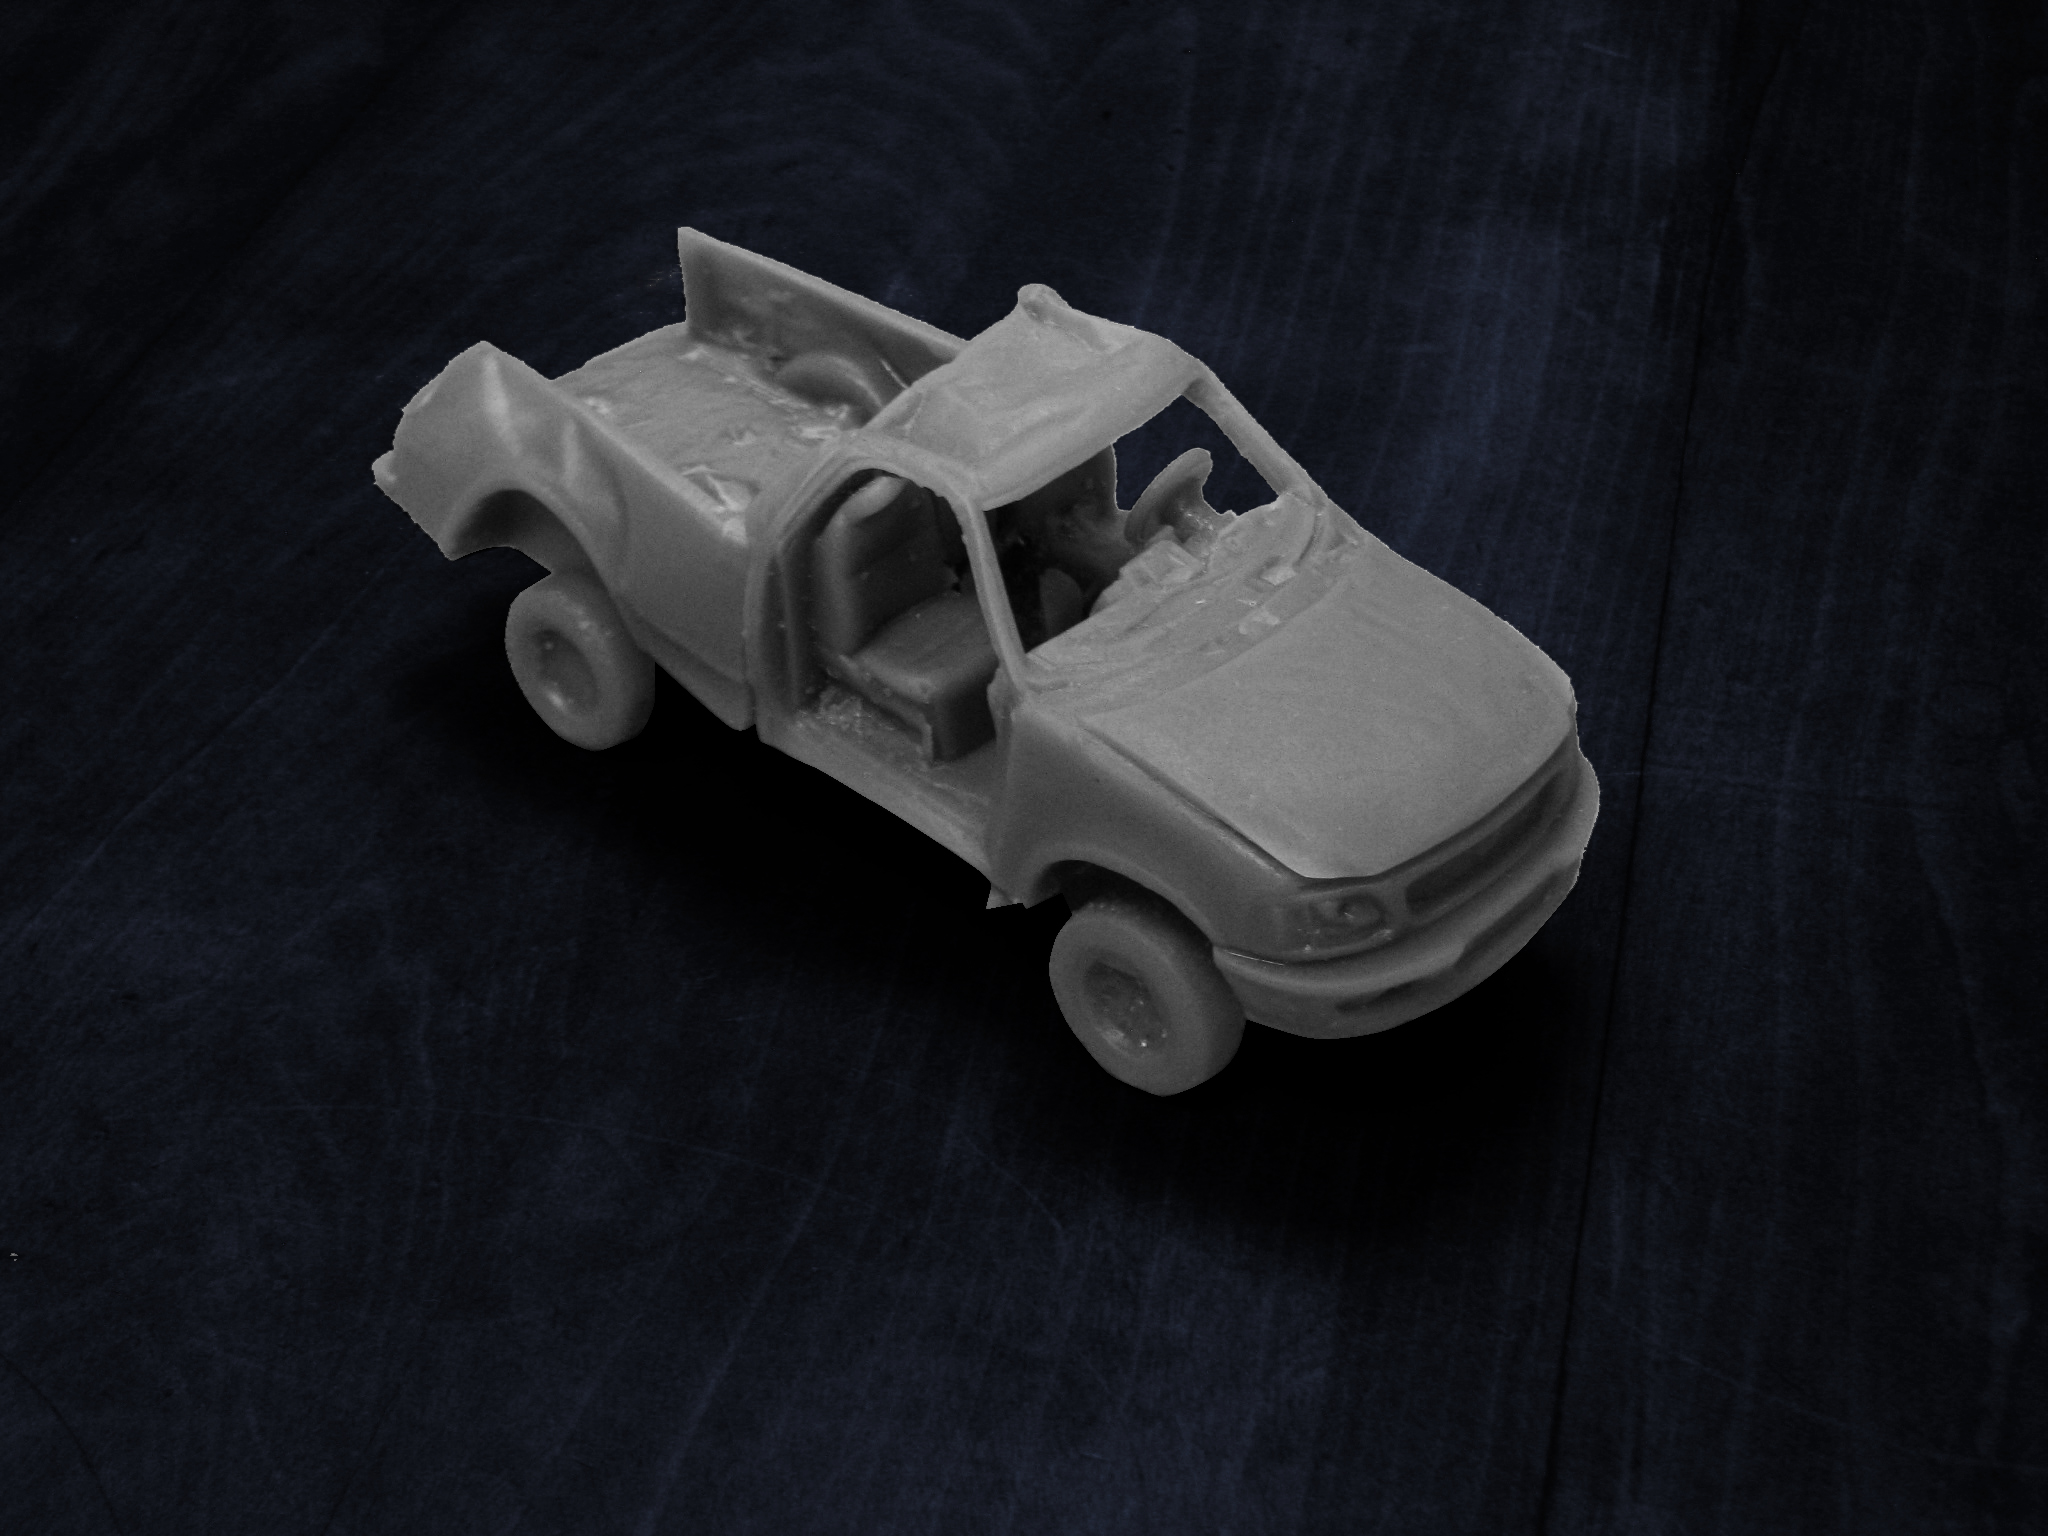 Subject Vehicle 3D Print F15 Pickup: This 3D print was used as a trial exhibit to show that the occupant compartment of the pickup truck stayed intact when the vehicle rolled several times. Had the doors not been ripped off during the accident the occupants may have survived the crash.